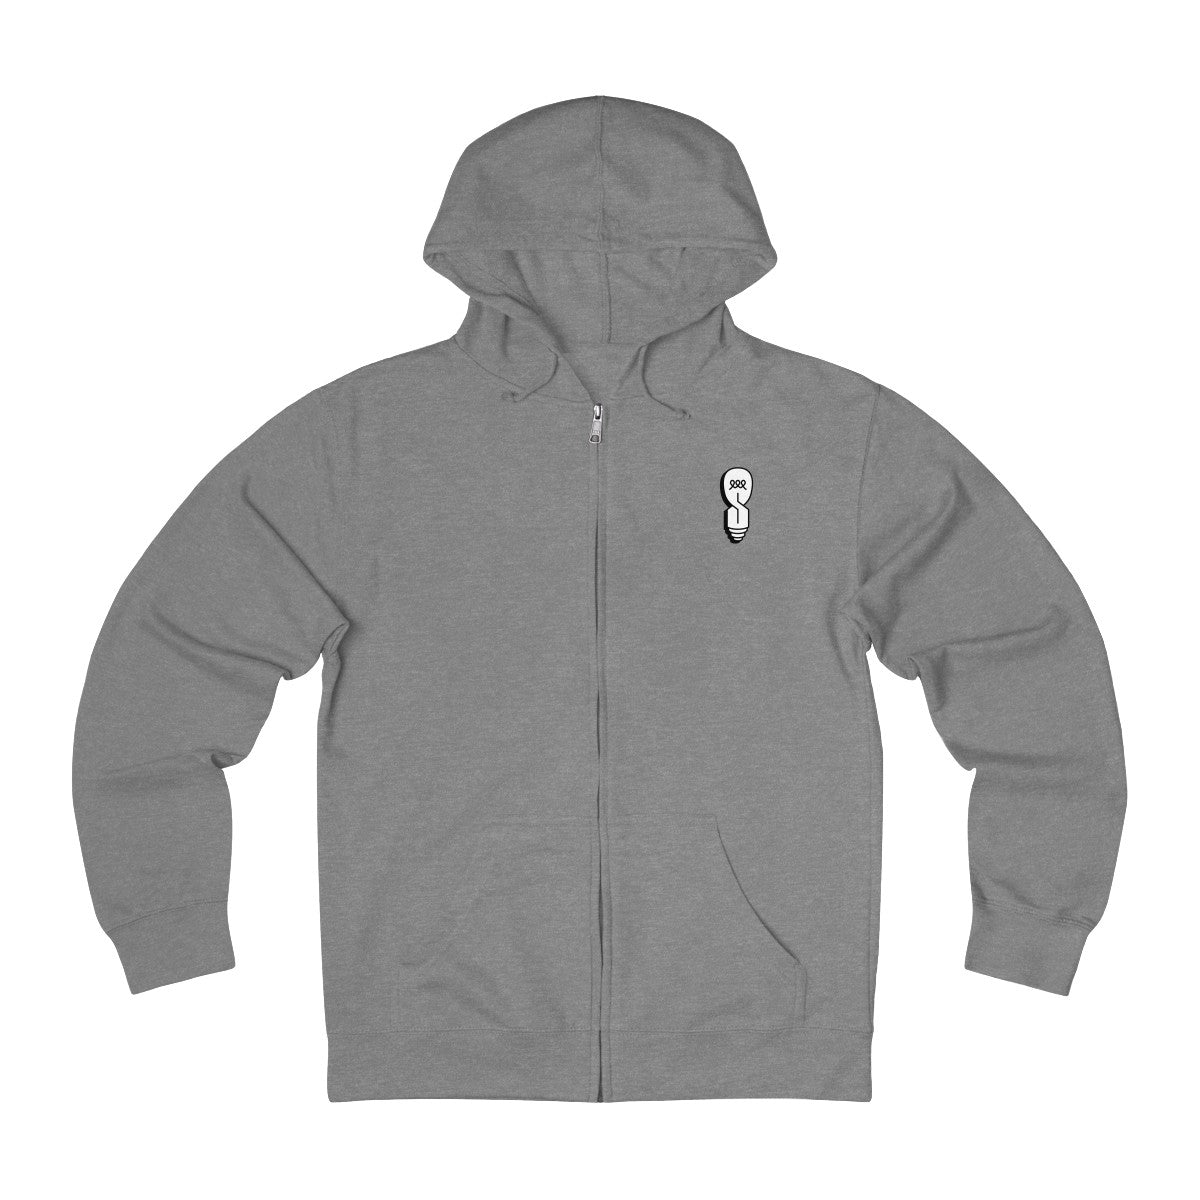 FLAT ESS - Edi$on - Unisex French Terry Zip Hoodie